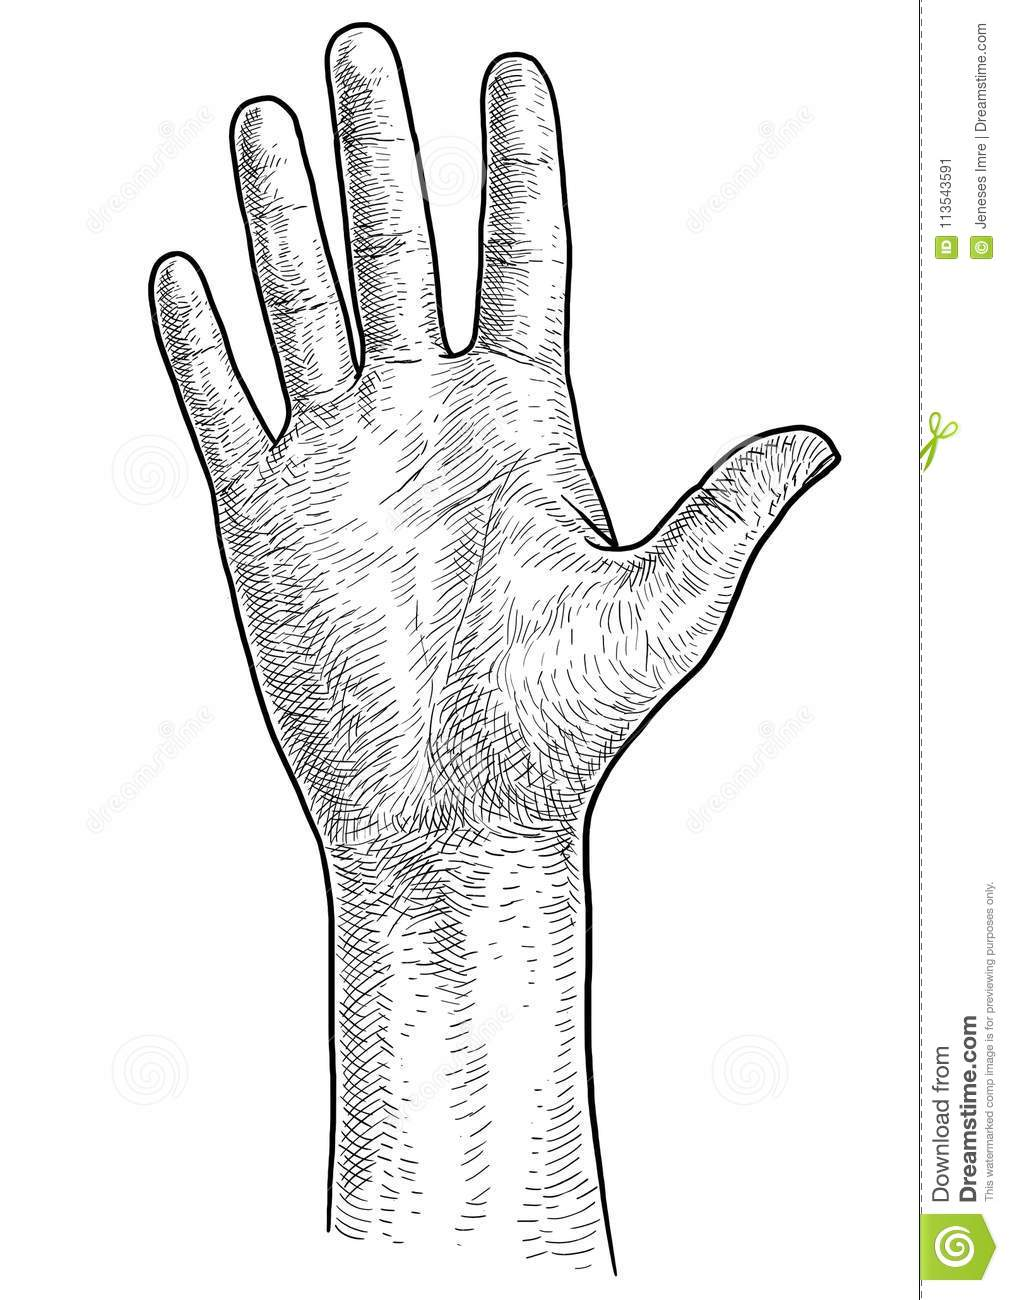 Hand palm illustration drawing engraving ink line art